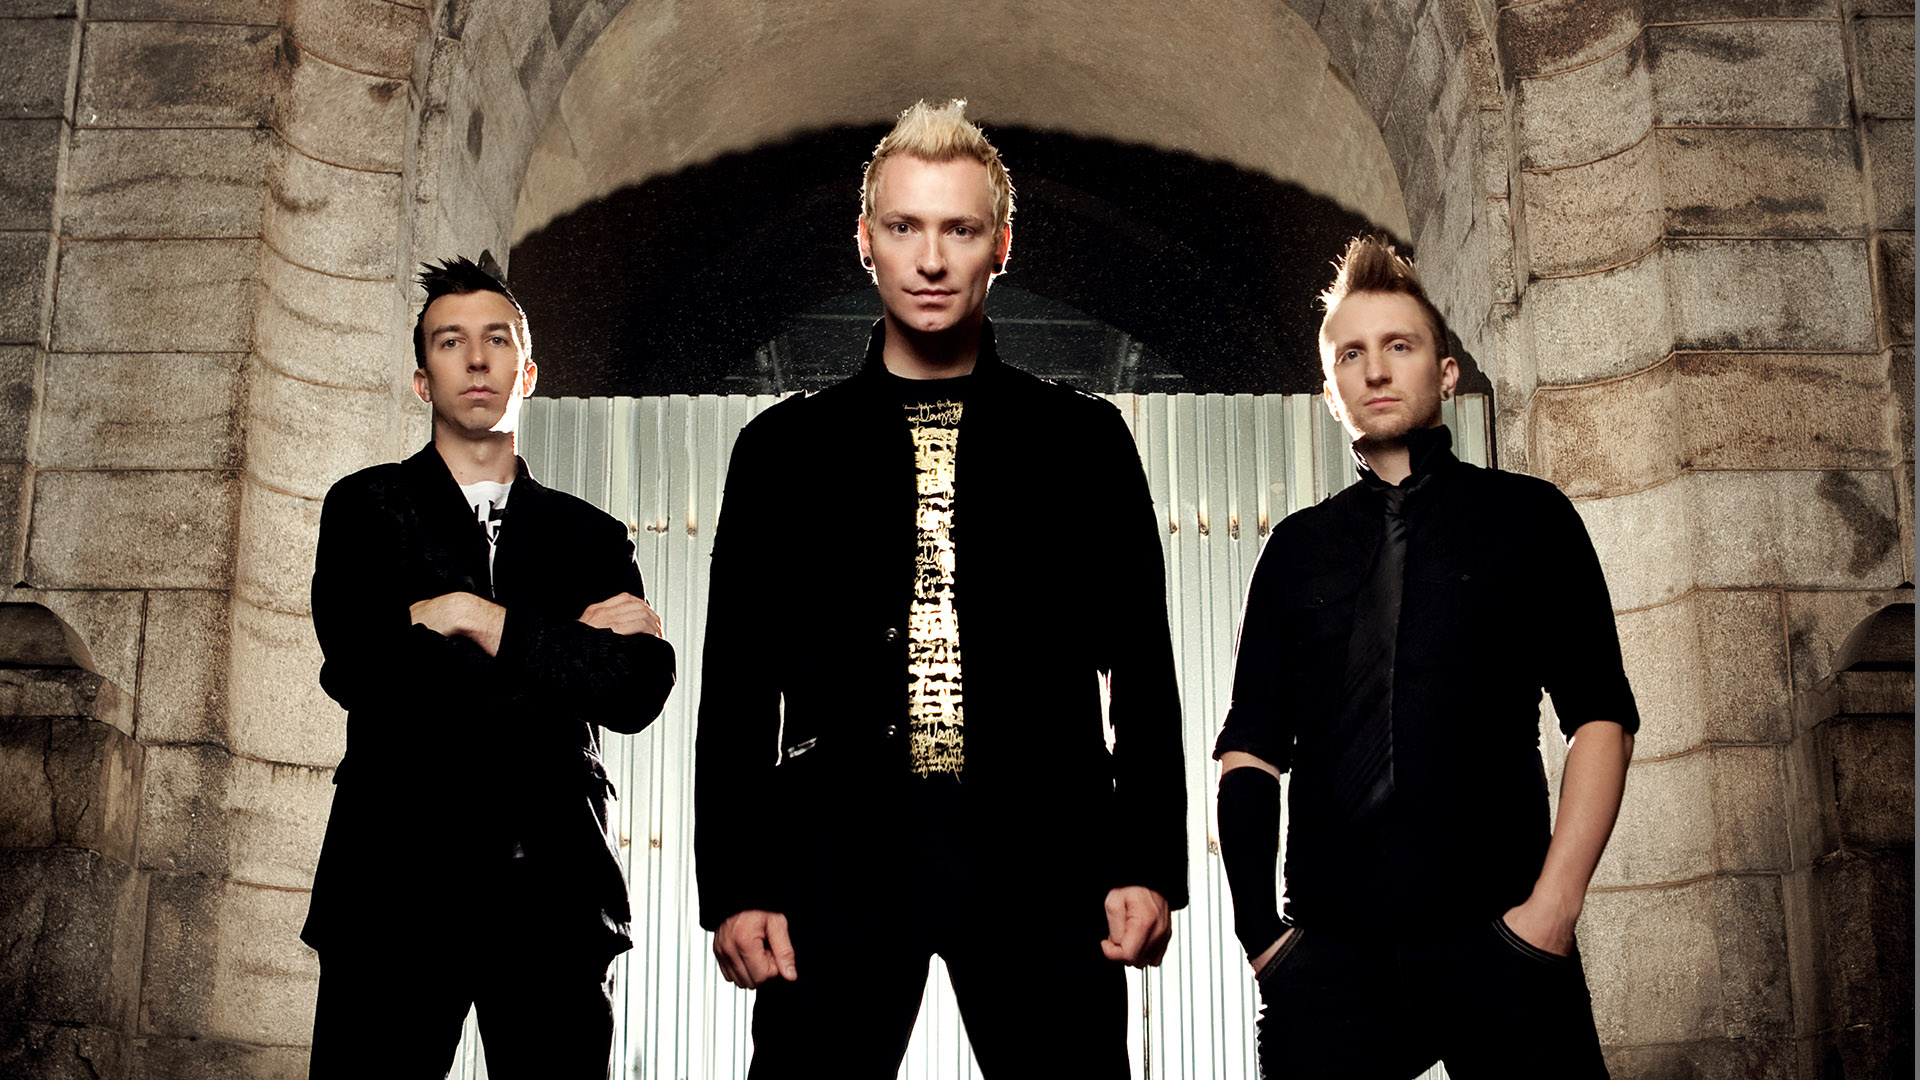 Thousand Foot Krutch images TFK gifs HD wallpaper and background 1920x1080